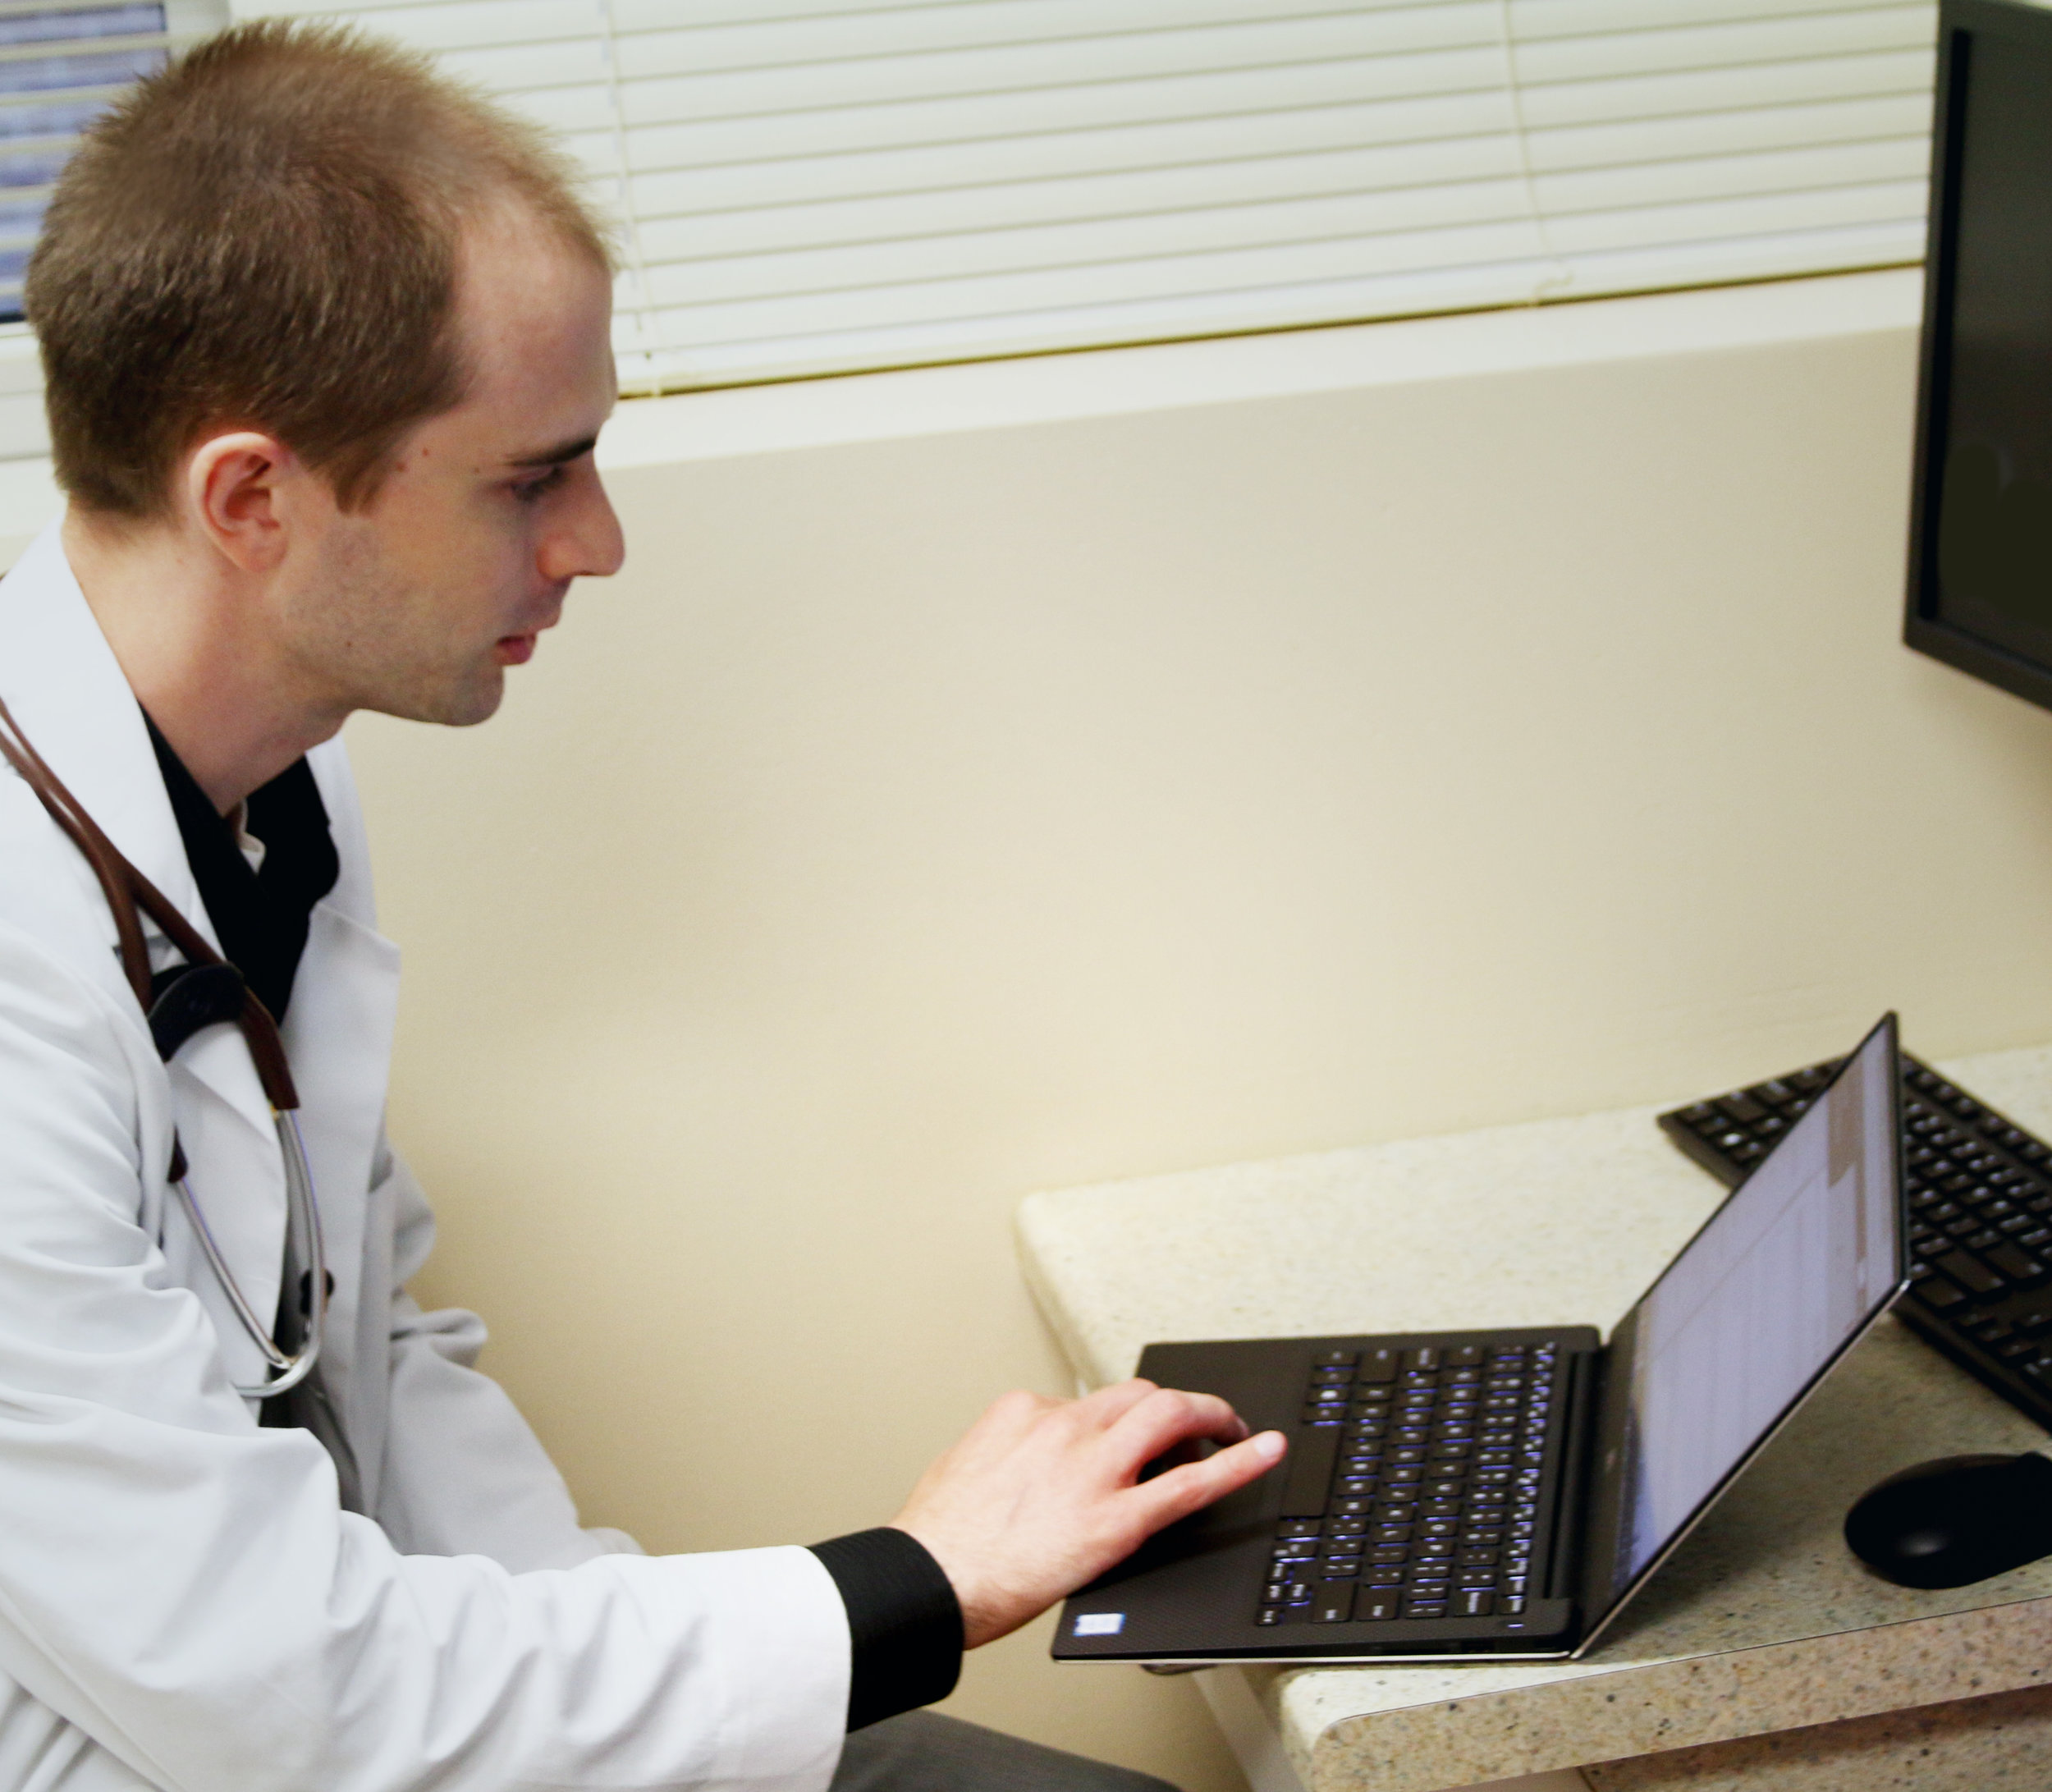 Doctor in white coat on laptop in front of desktop computer